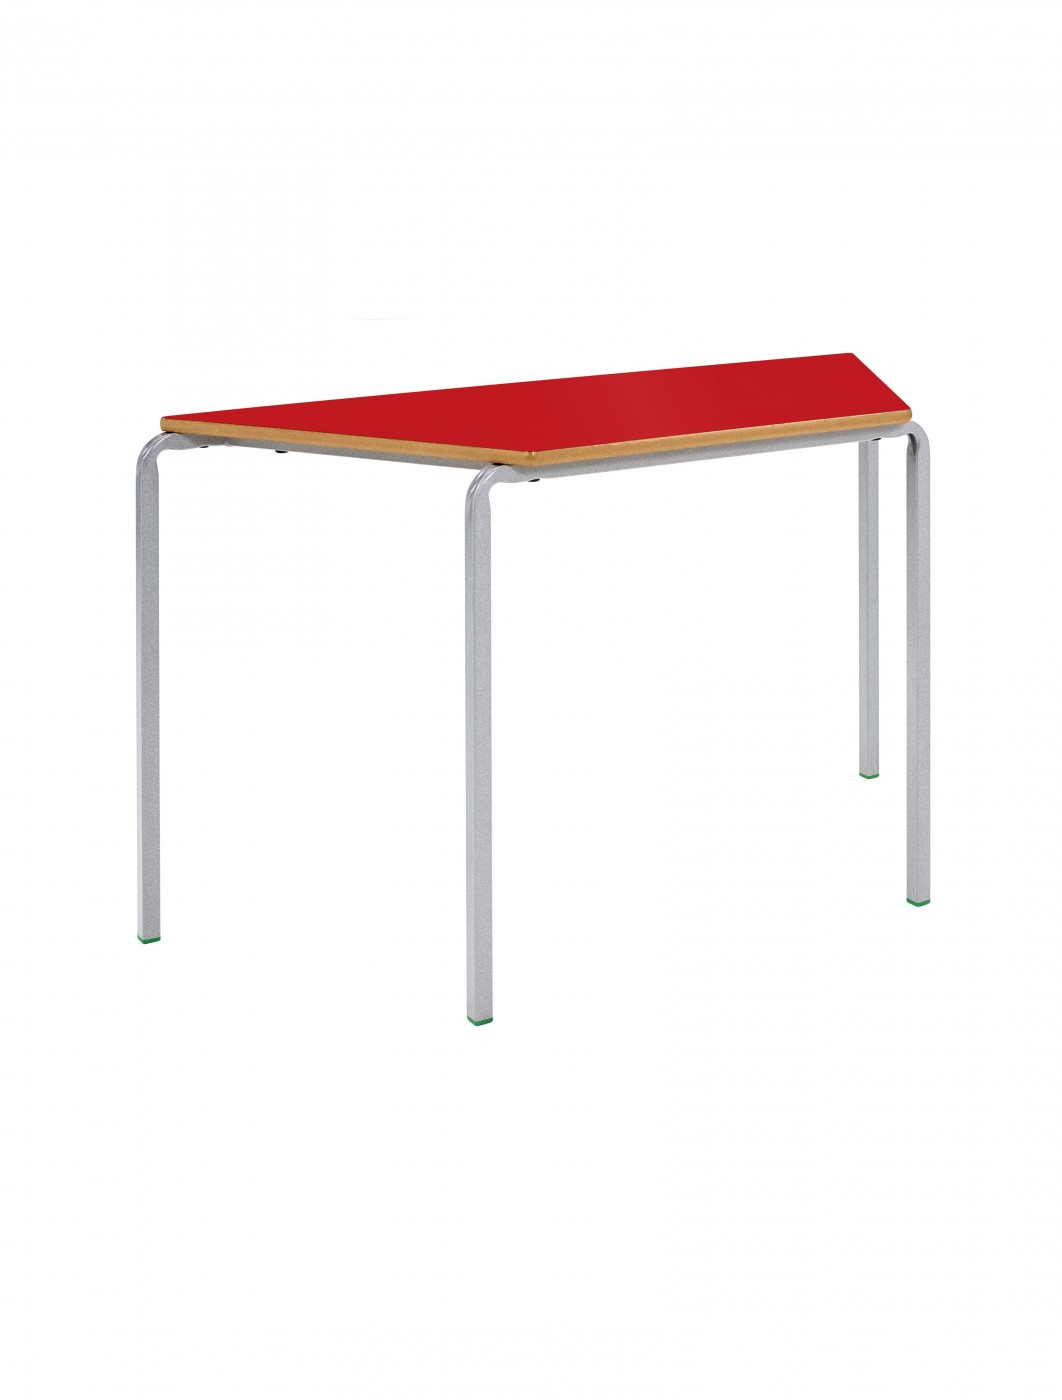 Classroom Table Metalliforms 1100mm Trapezoidal Classroom Table CBSQ-11LE-MD